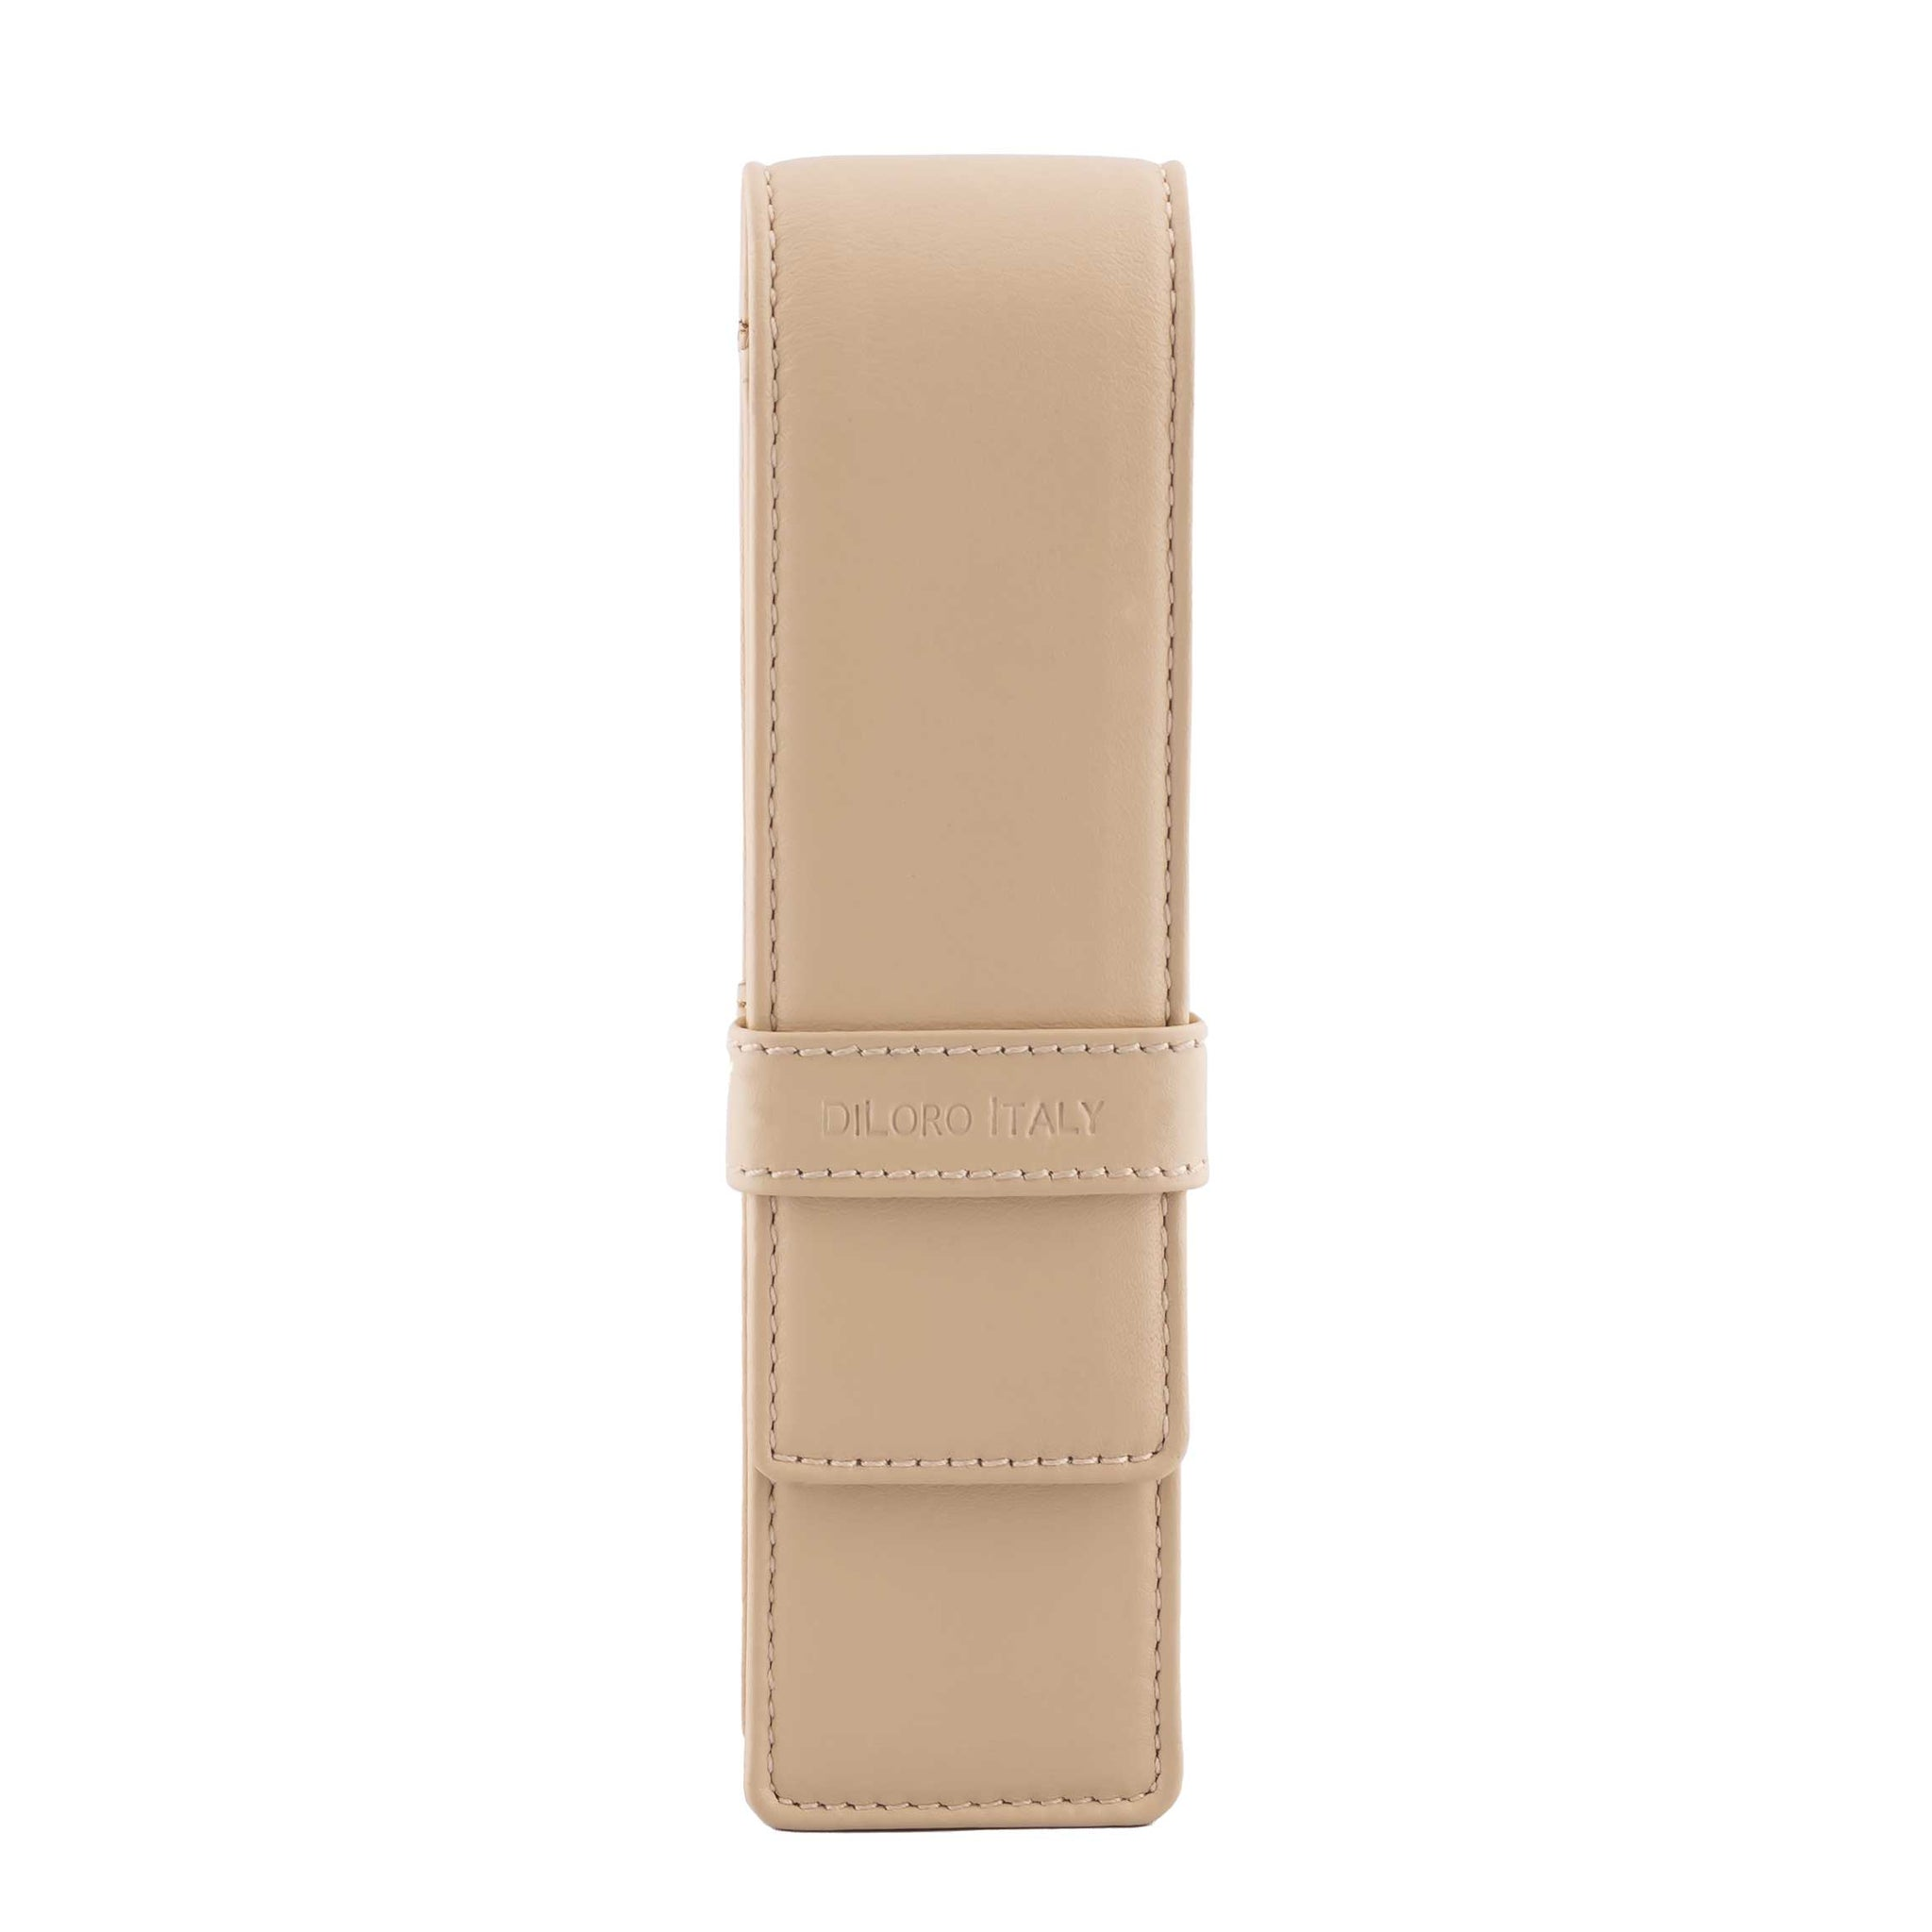 DiLoro Double Pen Case Holder in Top Quality, Full Grain Nappa Leather - Beige (Off White), Front